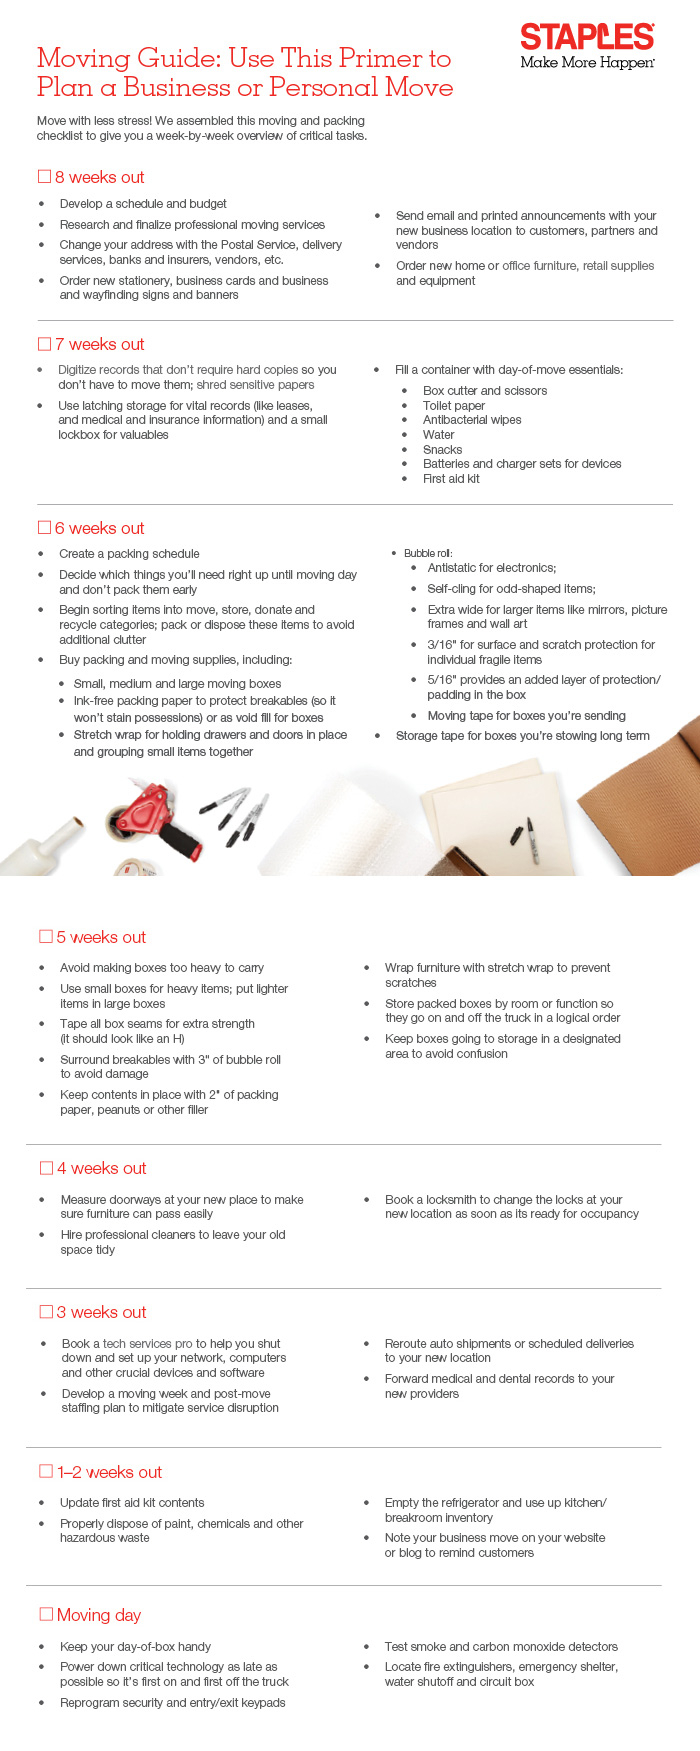 This is a moving checklist we created for Staples.